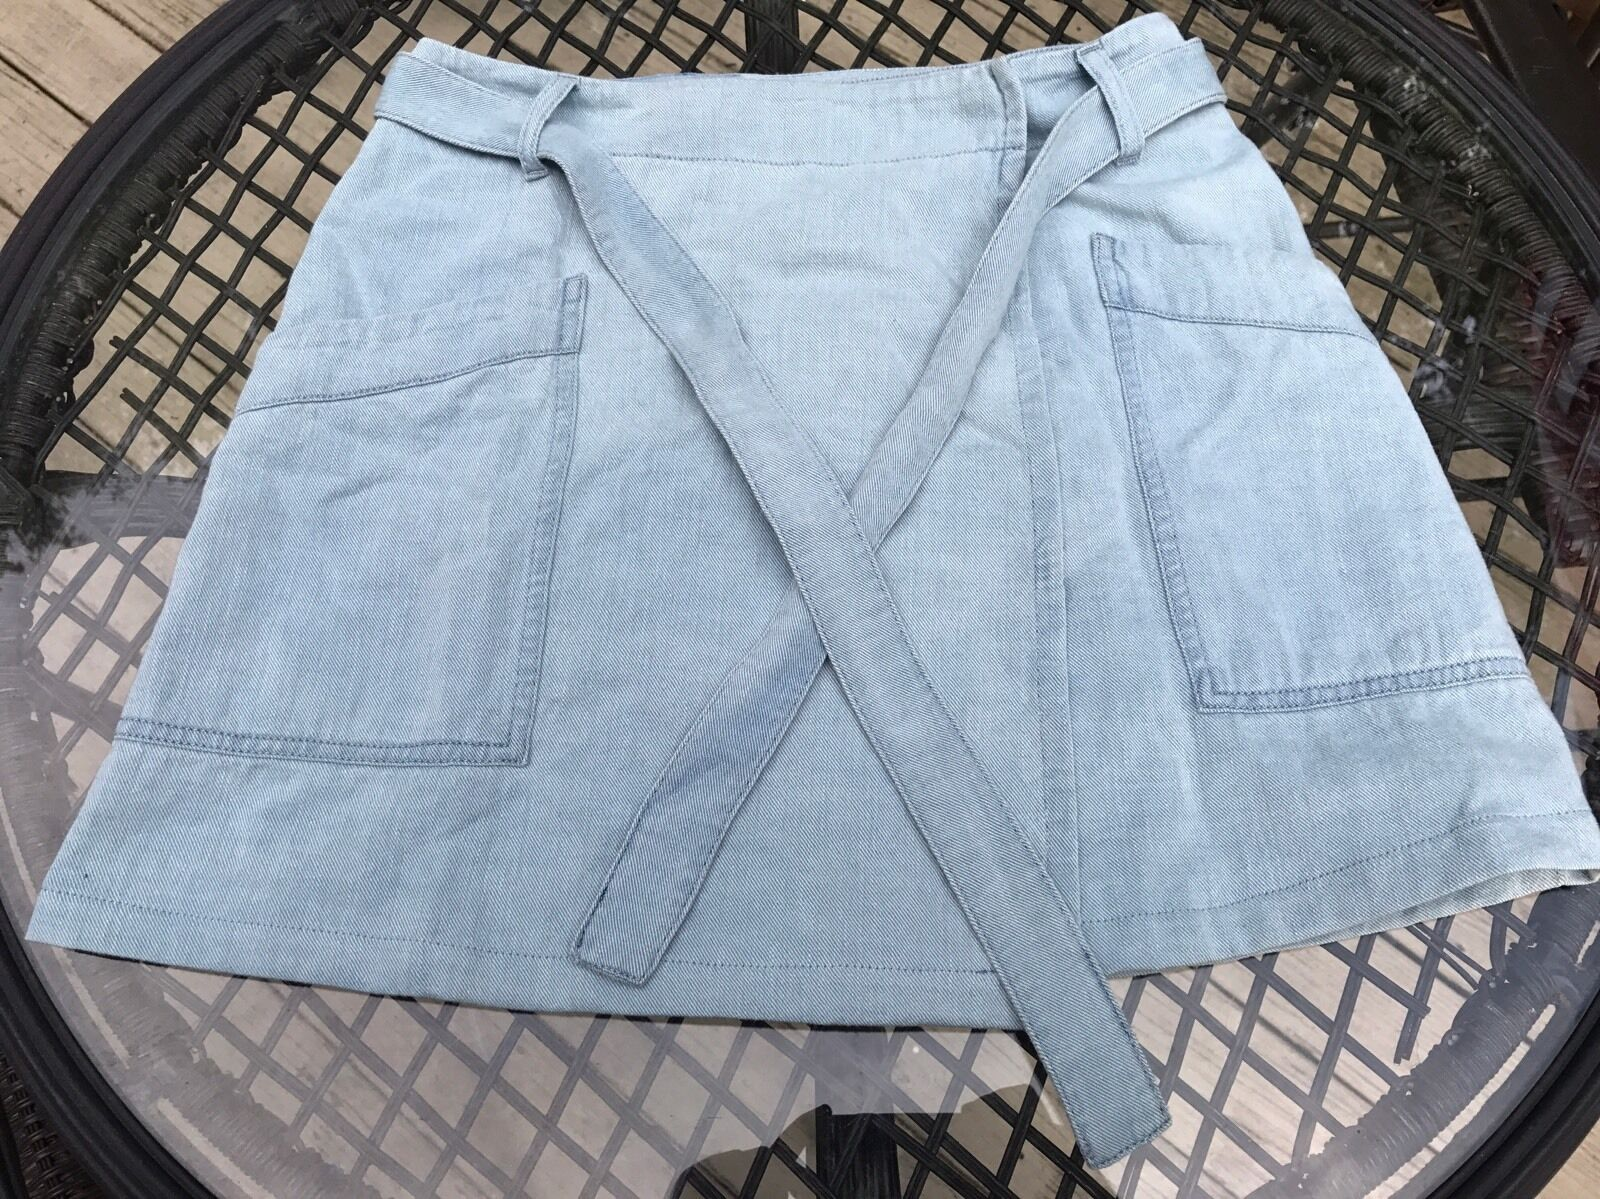 Madison Margiela MM6 Light Denim Skirt With Tying Belt bluee  Size 40 Womans